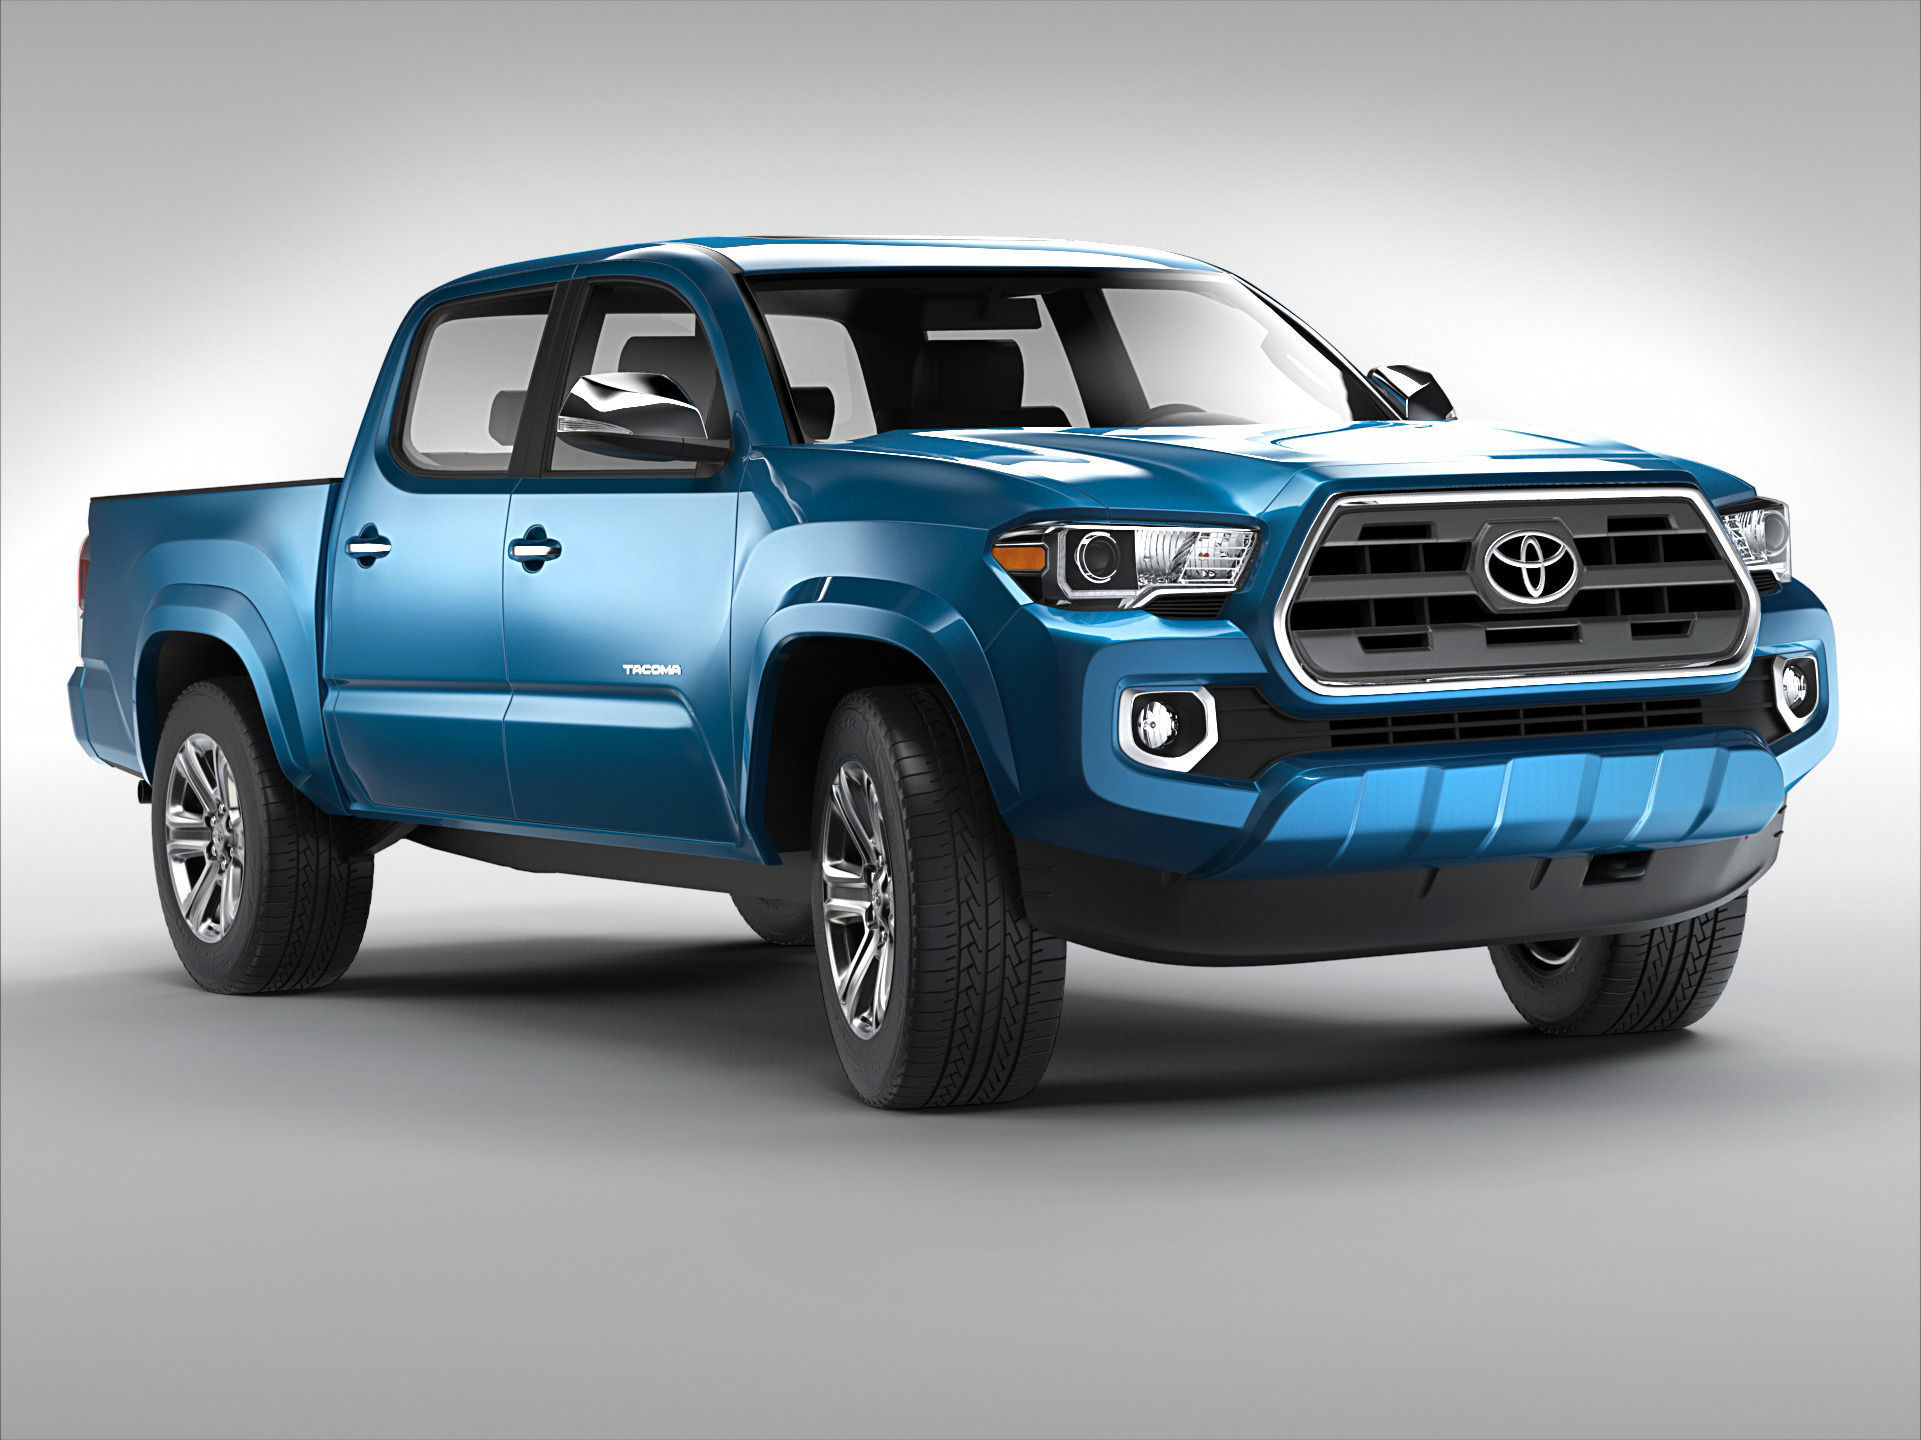 toyota tacoma 2016 3d model max obj 3ds fbx stl. Black Bedroom Furniture Sets. Home Design Ideas